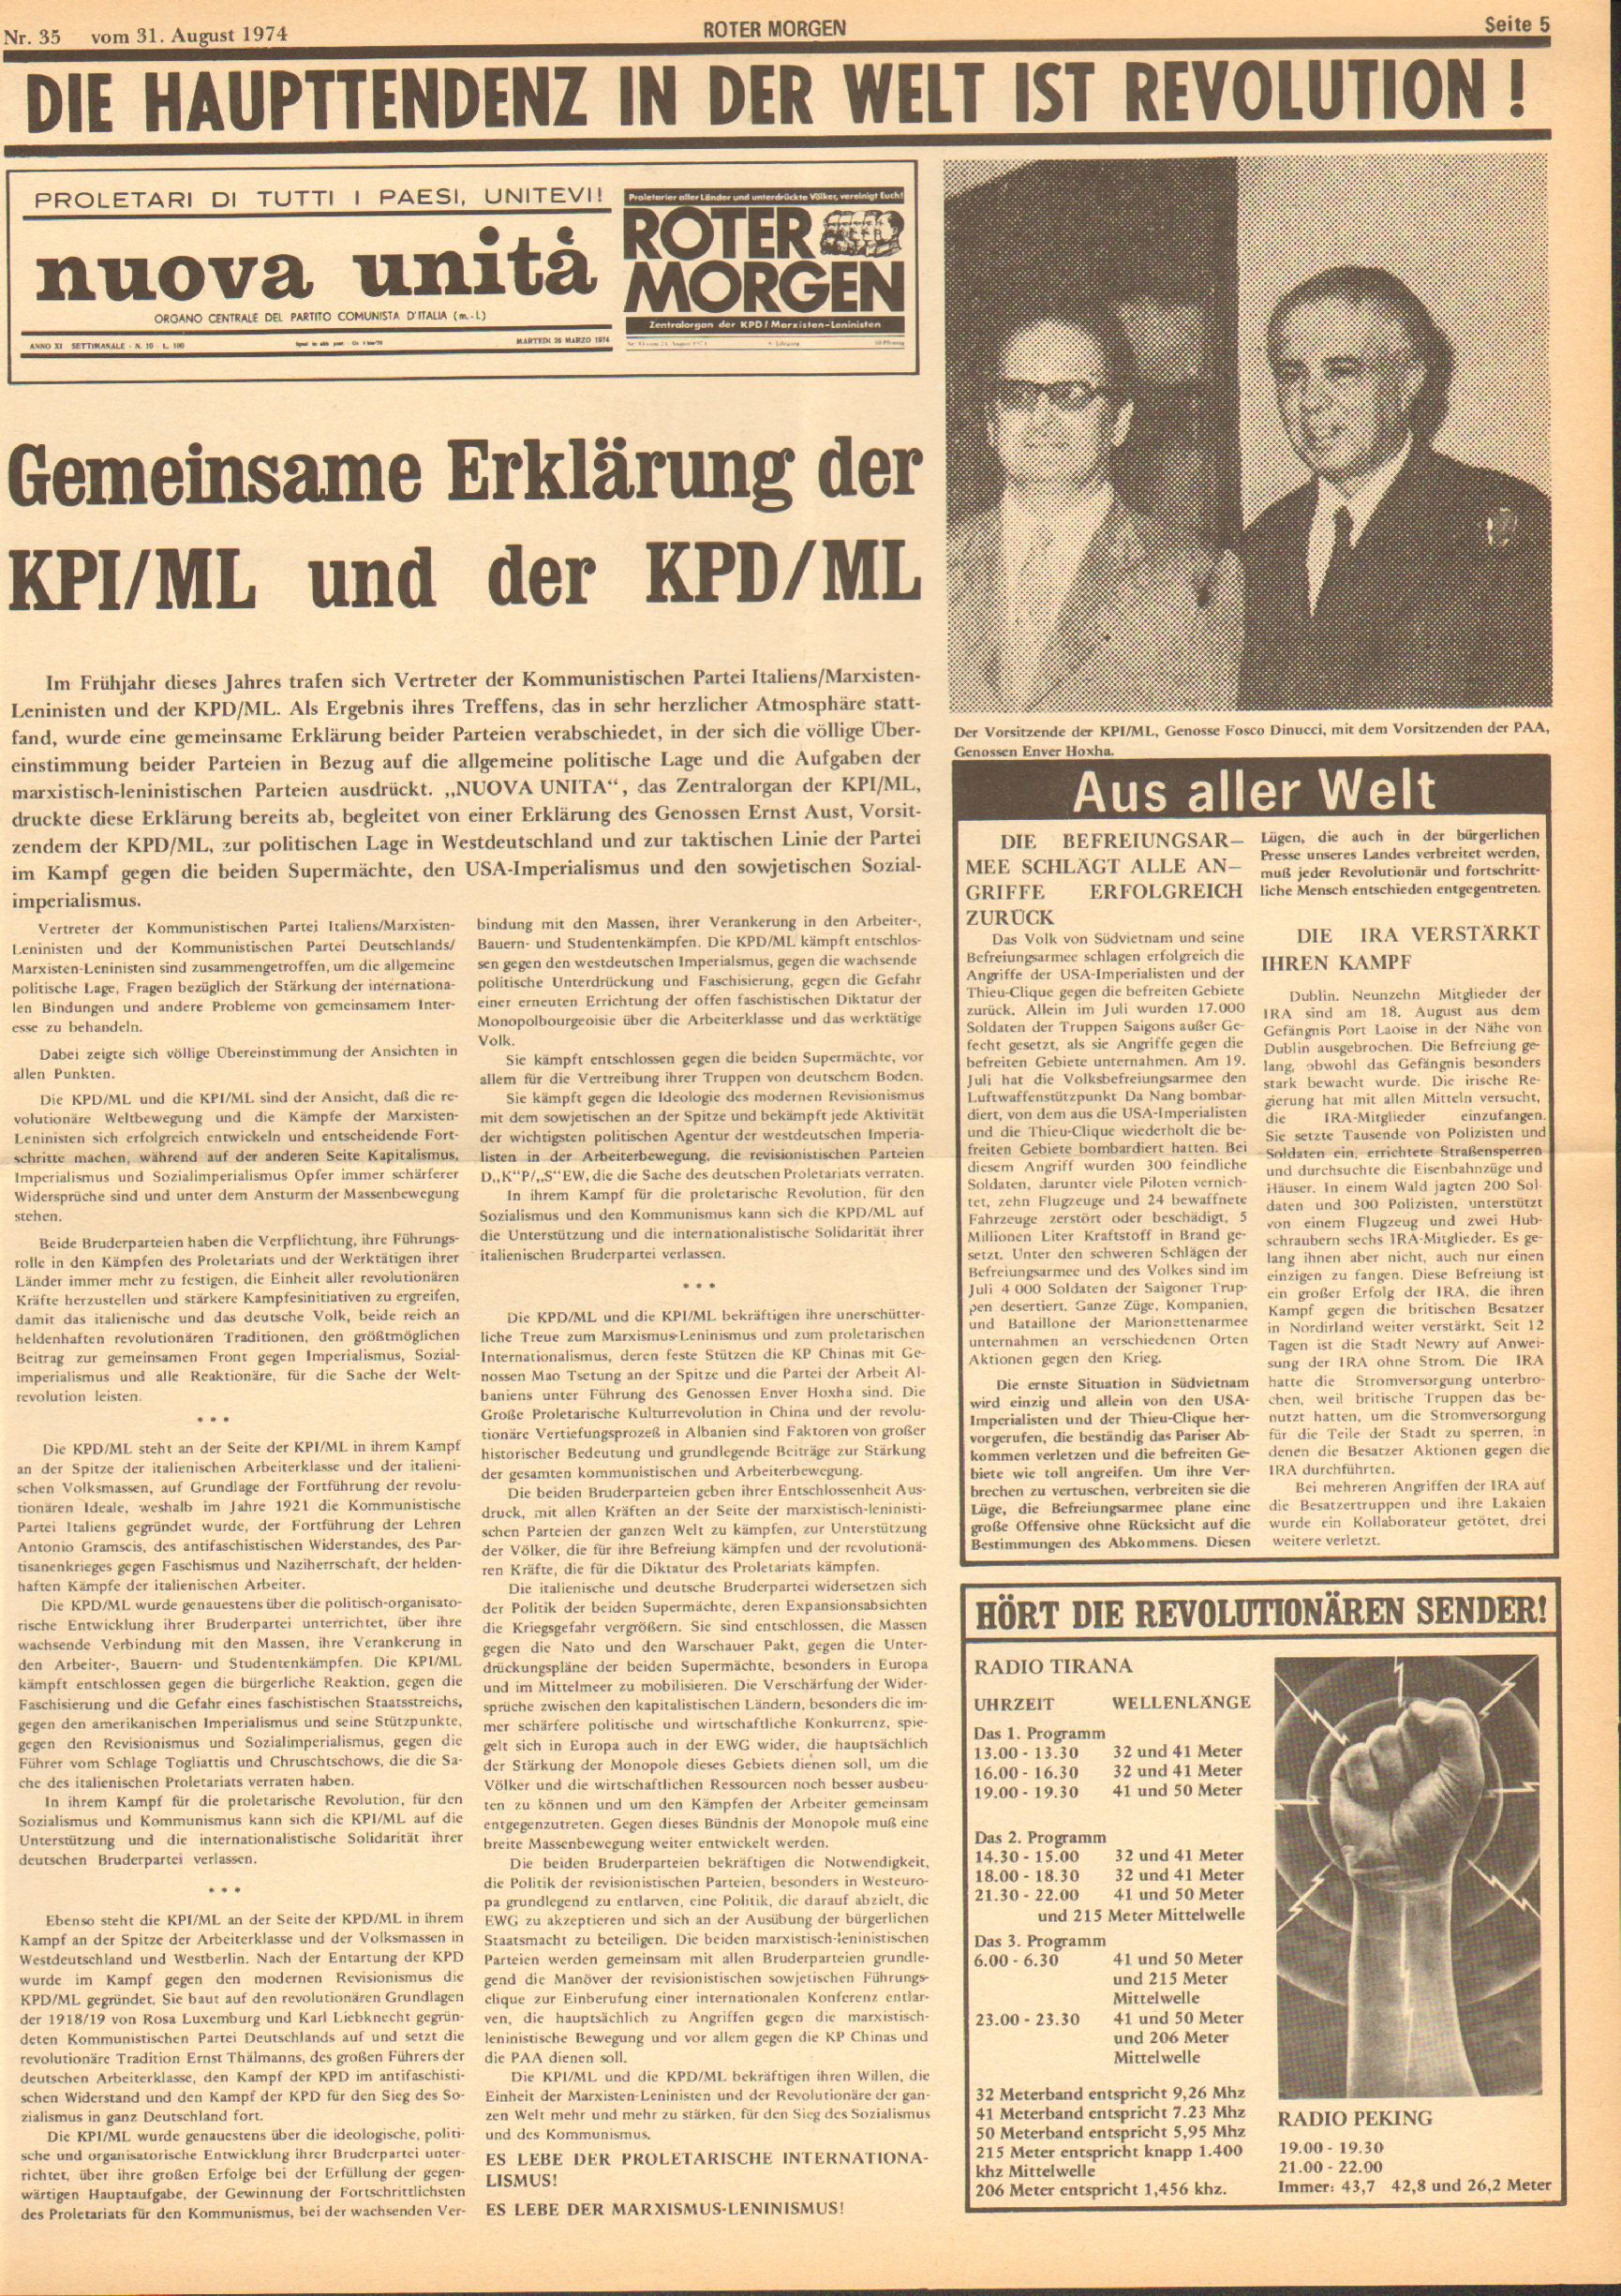 Roter Morgen, 8. Jg., 31. August 1974, Nr. 35, Seite 5